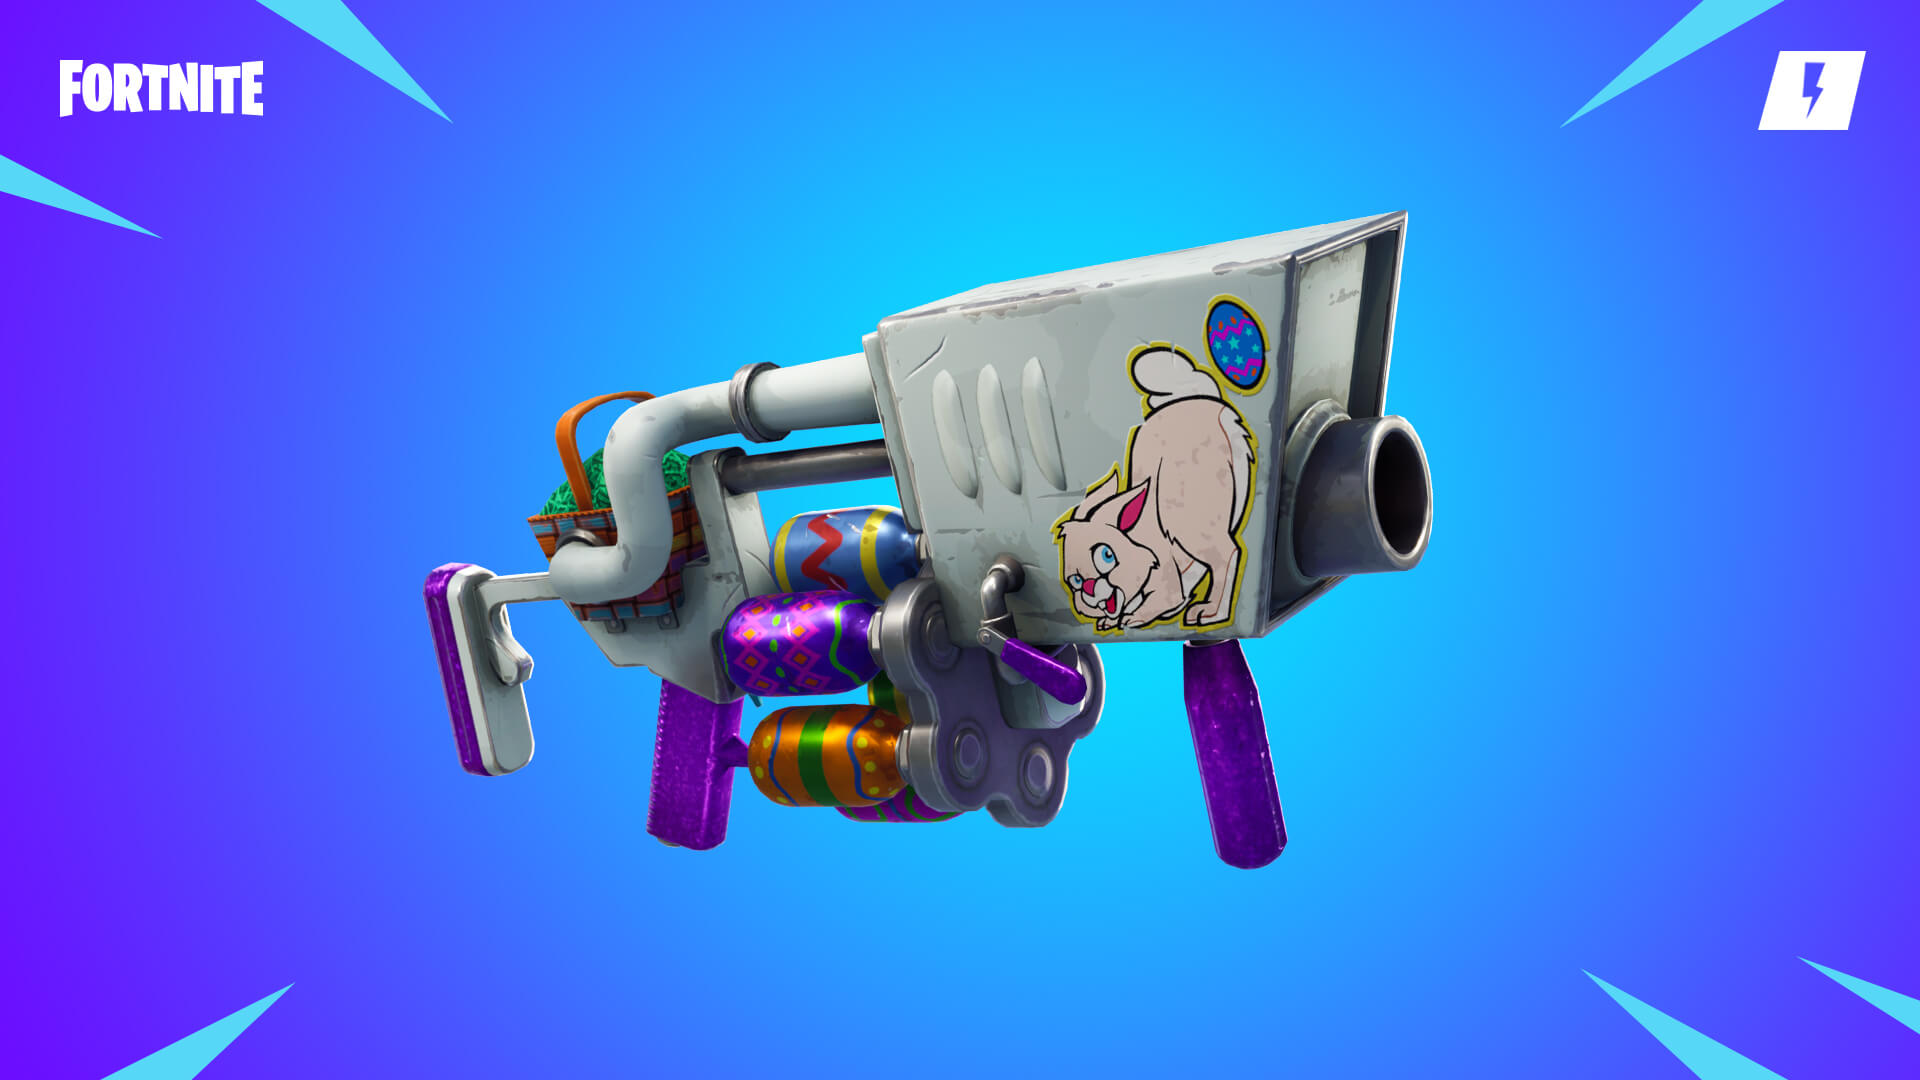 fortnite-easter-egg-launcher.jpg